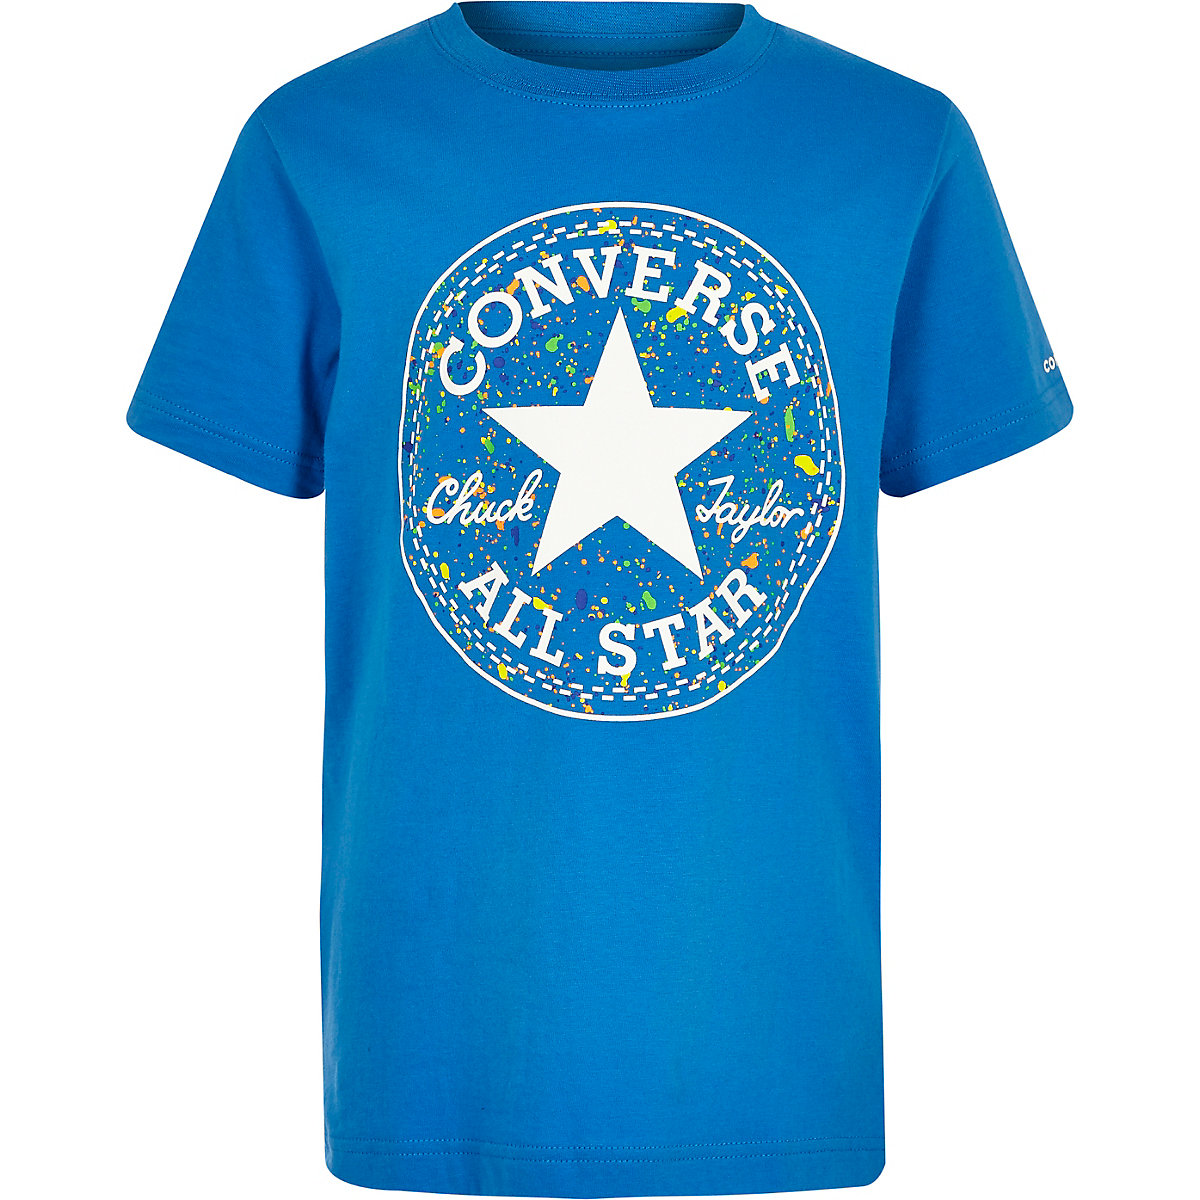 Boys blue Converse splatter logo T-shirt